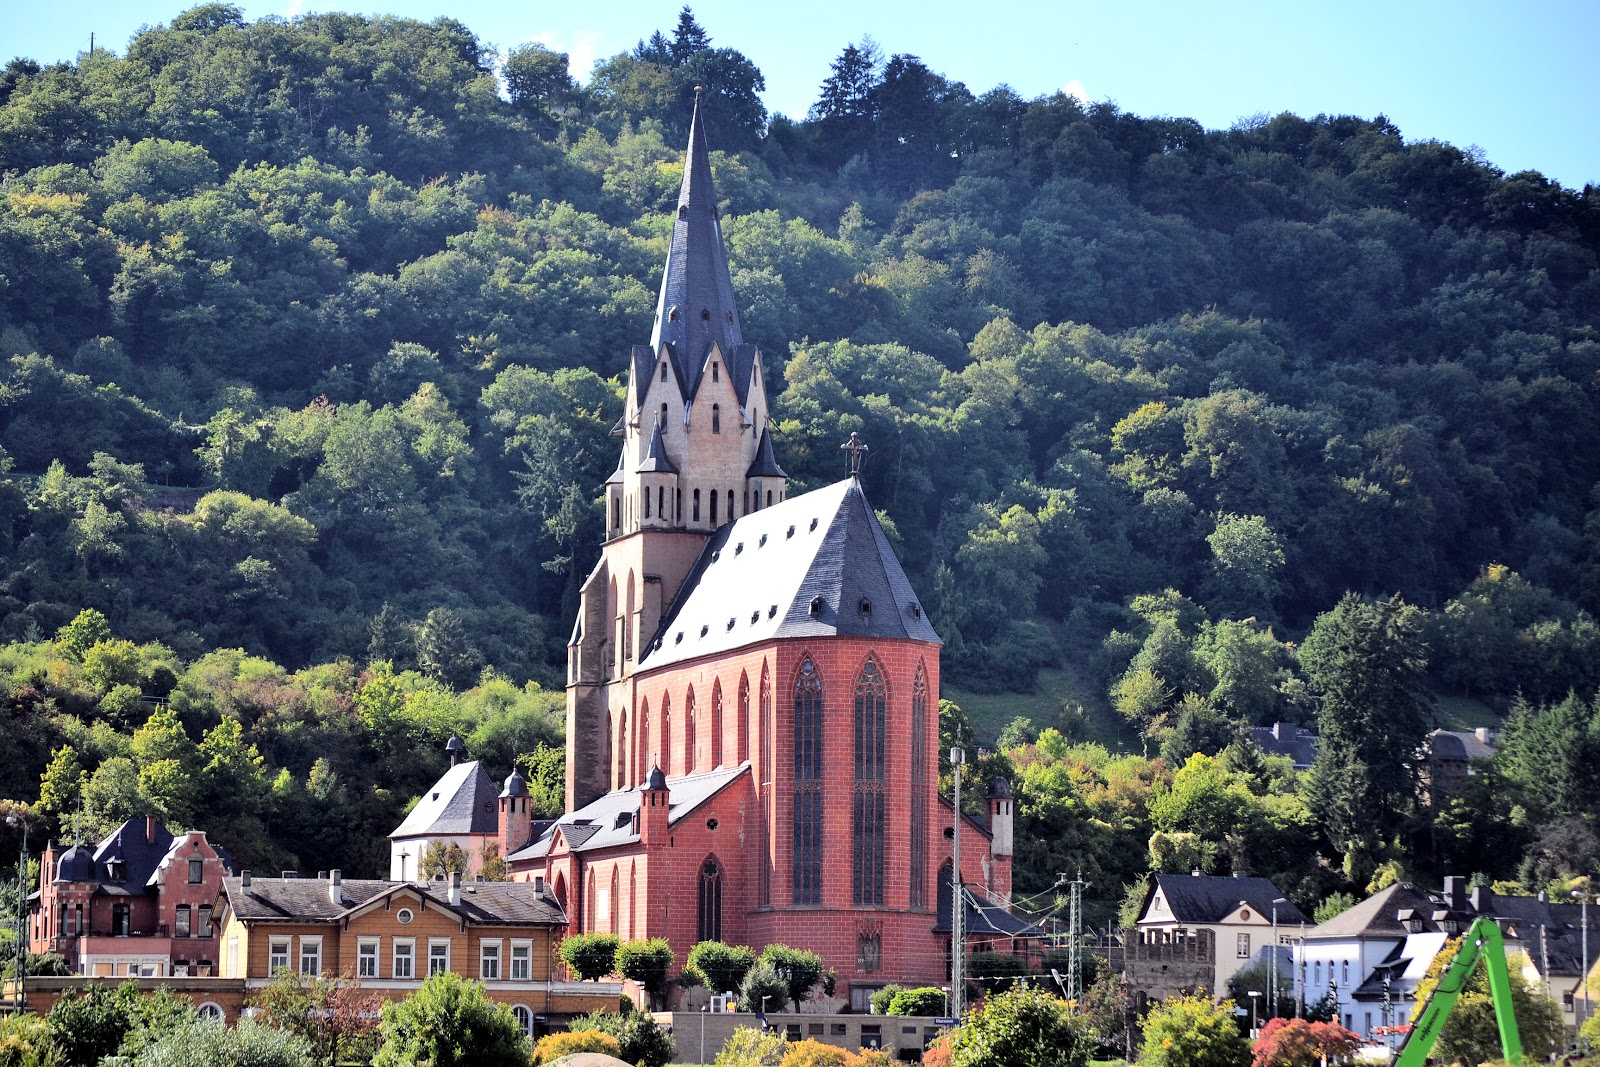 The Catholic Church of Our Lady dates back to 1308 and is home to one of the Rhine's most treasured artifacts—the Golden Altar dating back to the High Gothic.